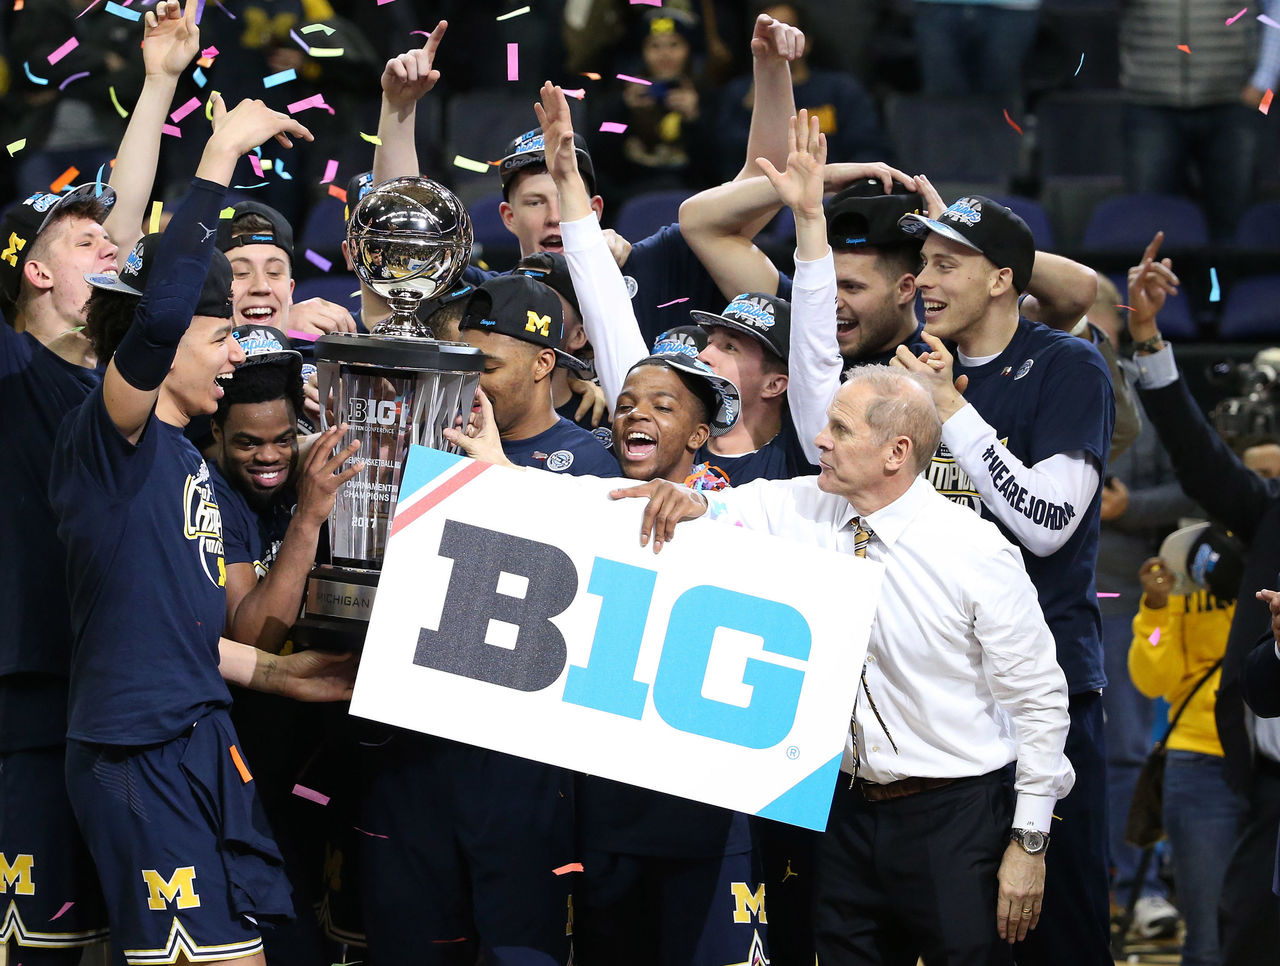 Cropped 2017 03 12t215606z 1125754556 nocid rtrmadp 3 ncaa basketball big ten conference tournament final michigan vs wisconsin